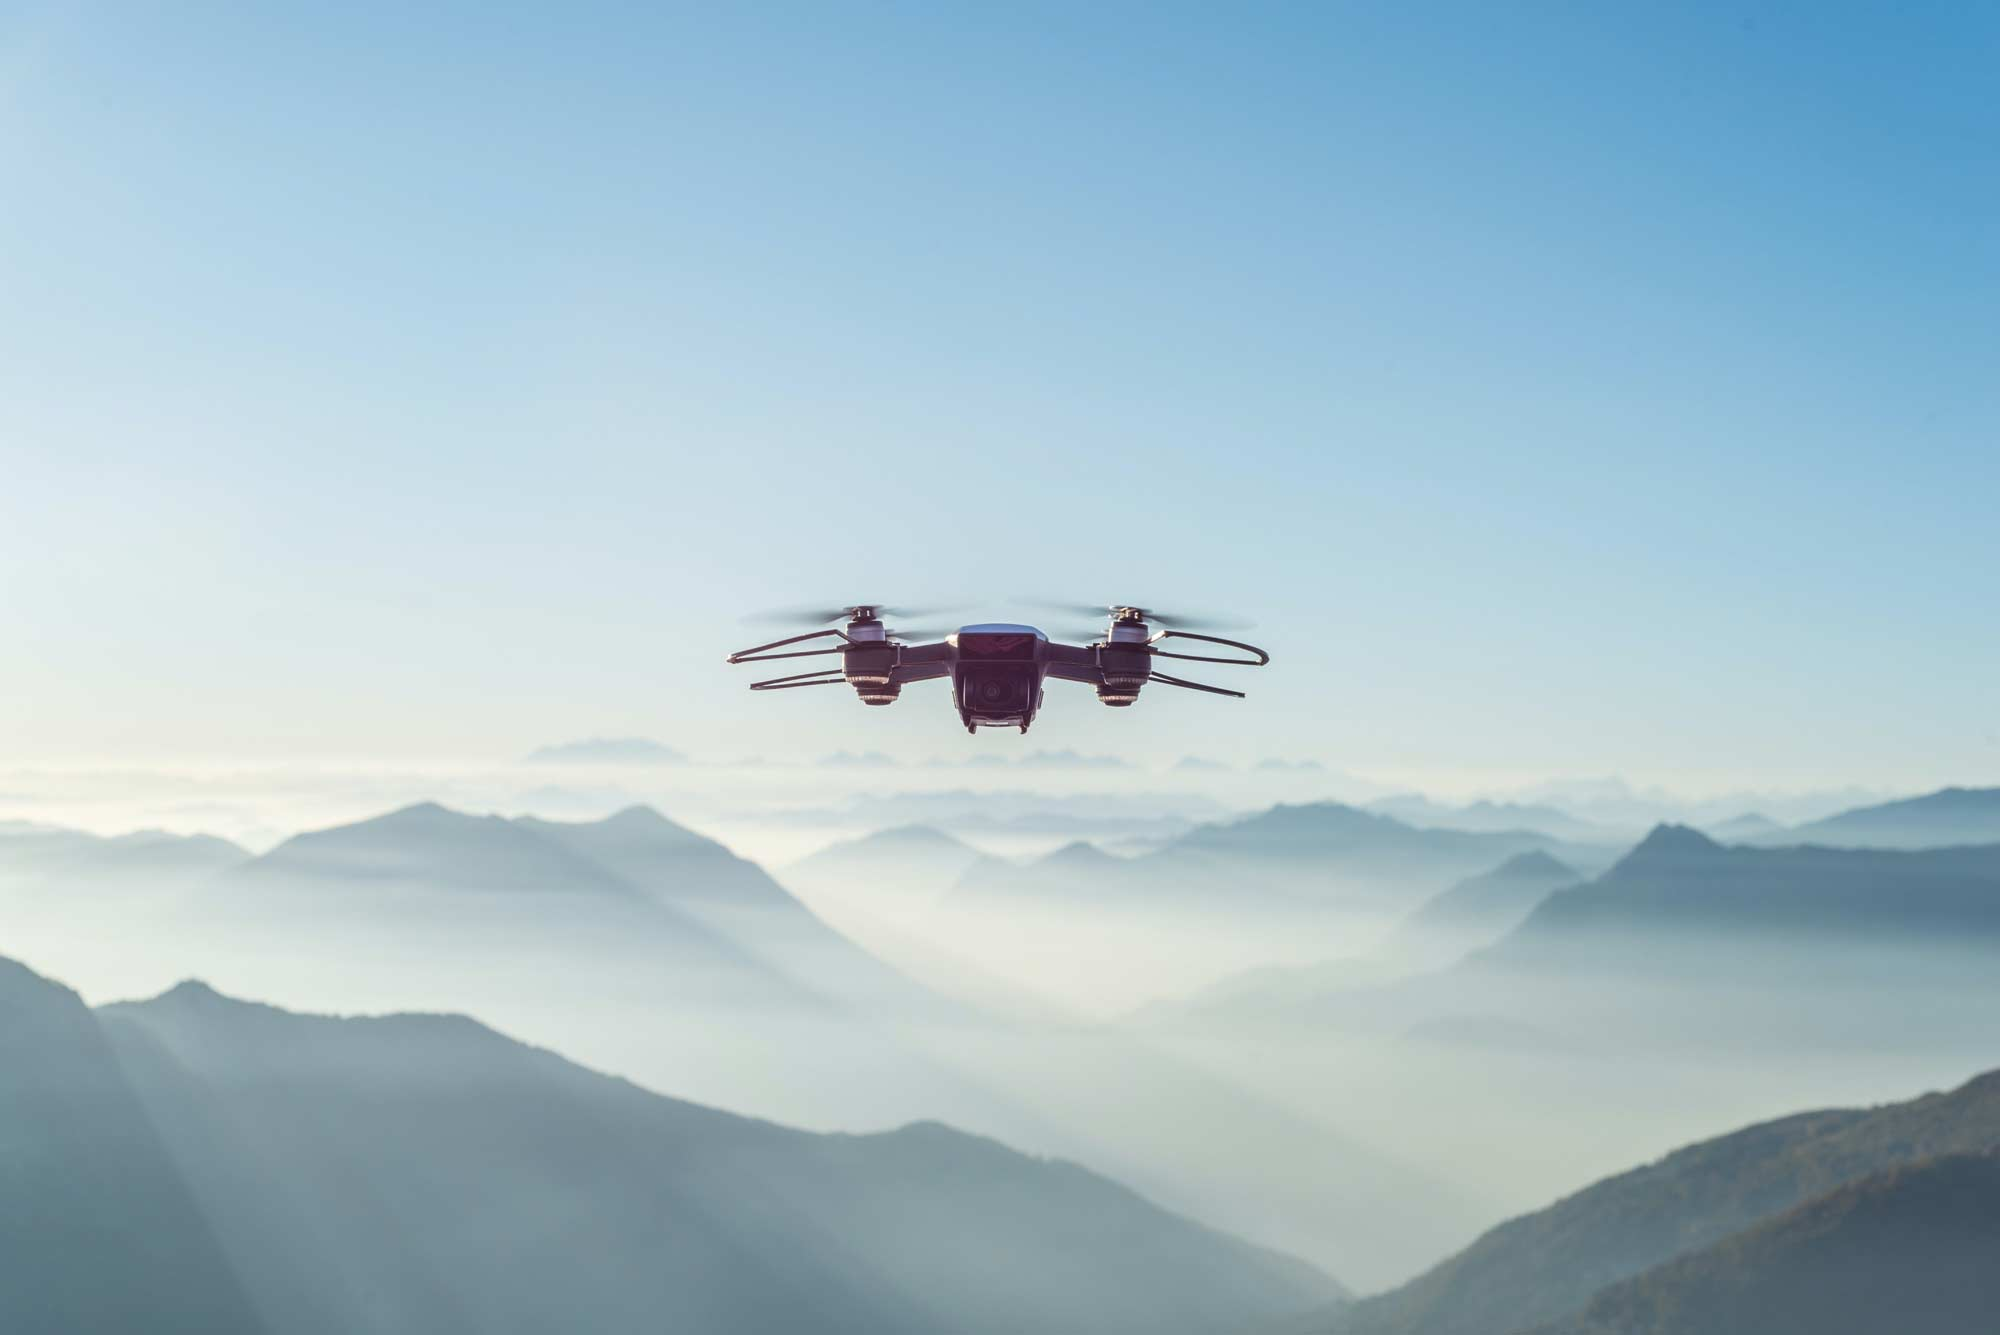 Drone flying above a mountain range